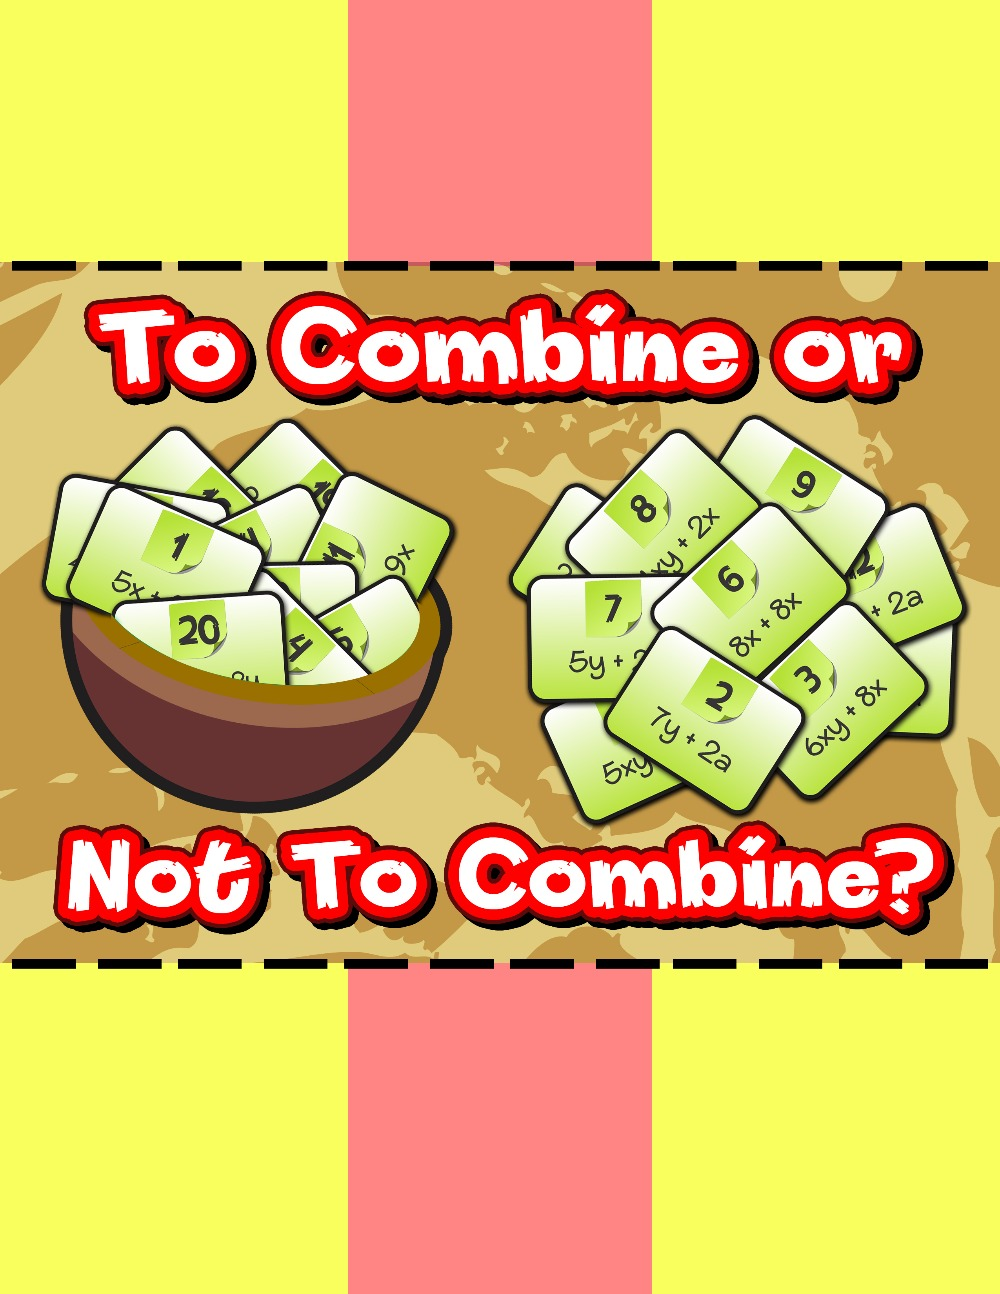 To Combine or Not To Combine